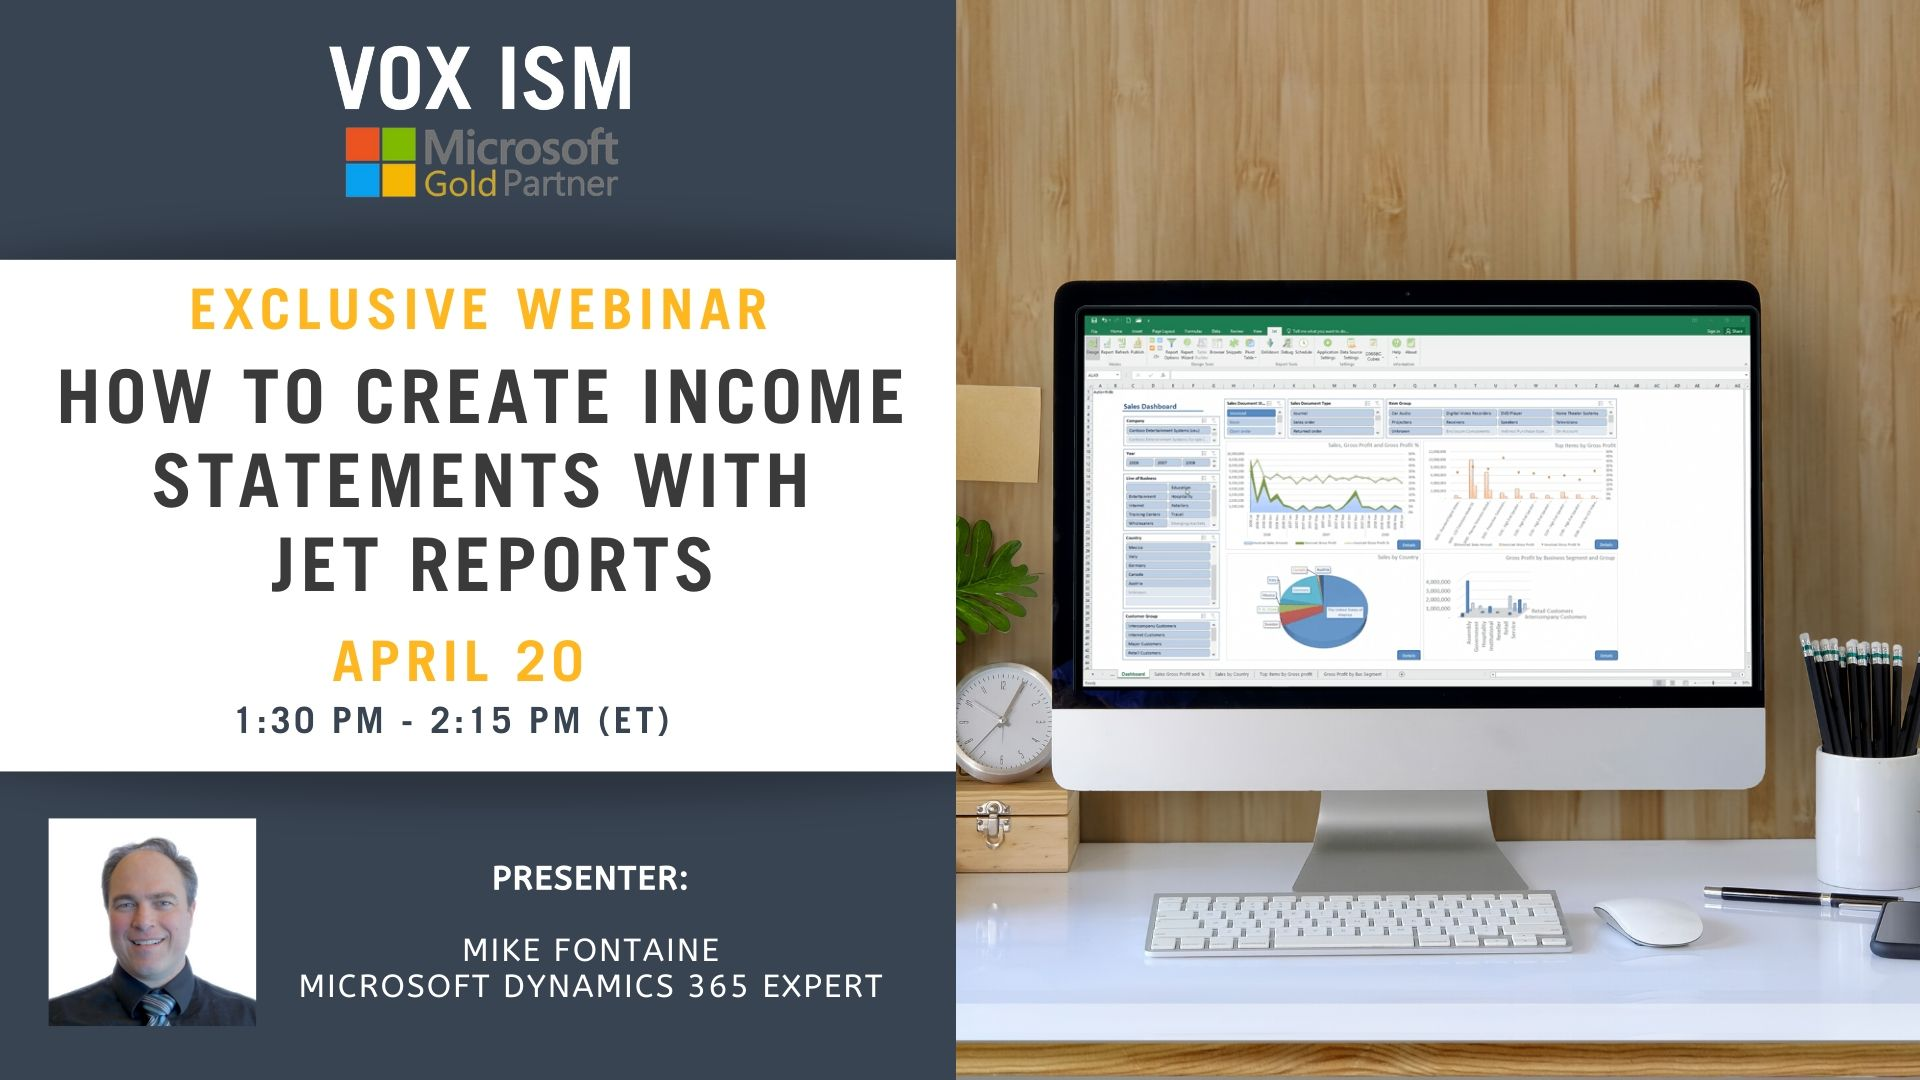 How to Create Income Statements with Jet Reports - April 20 - Webinar_VOX ISM